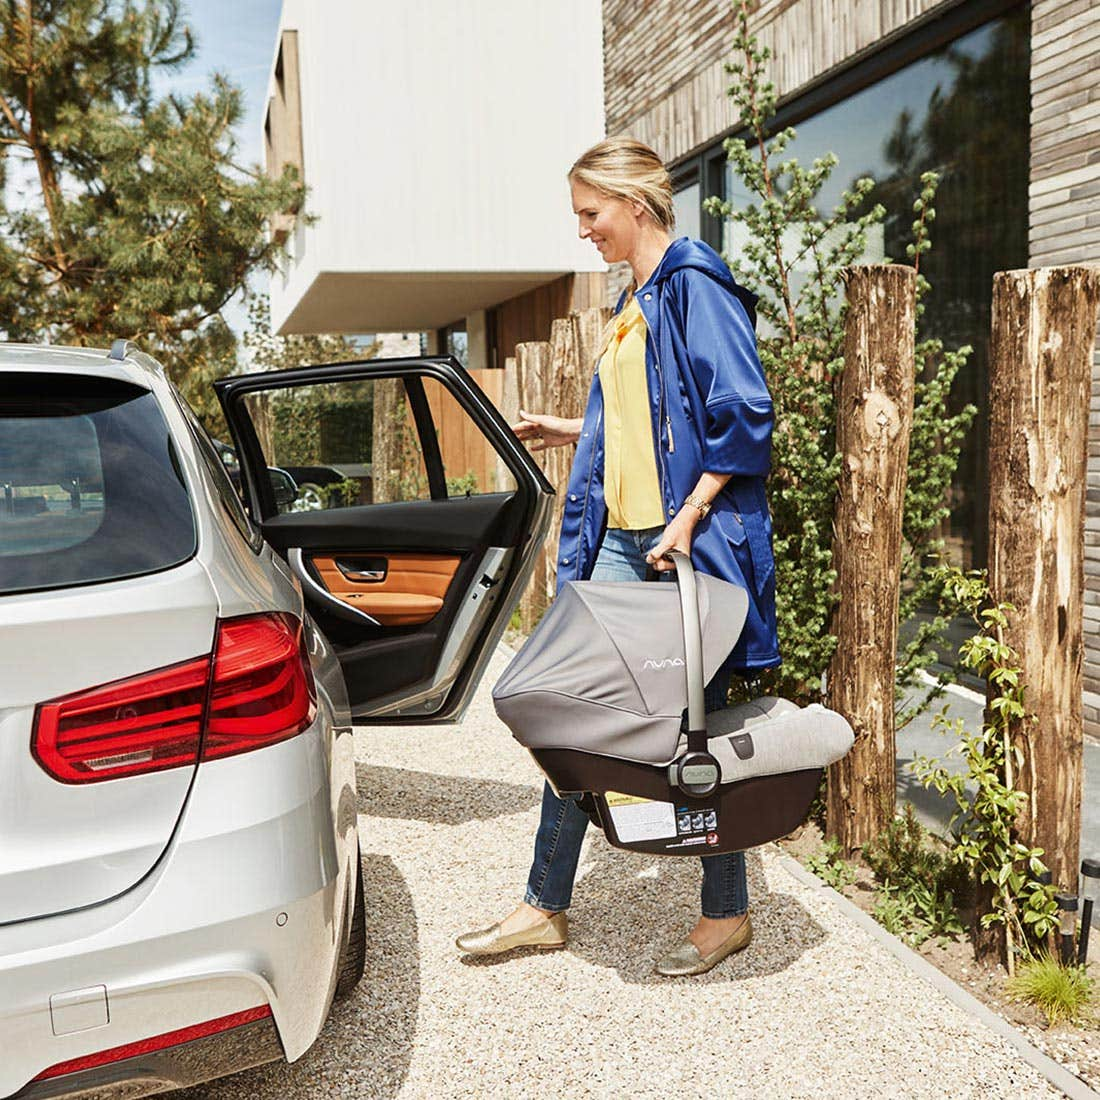 Mom carrying an infant car seat by the handle in her left hand while she opens the rear passenger-side door to put the car seat into the car.